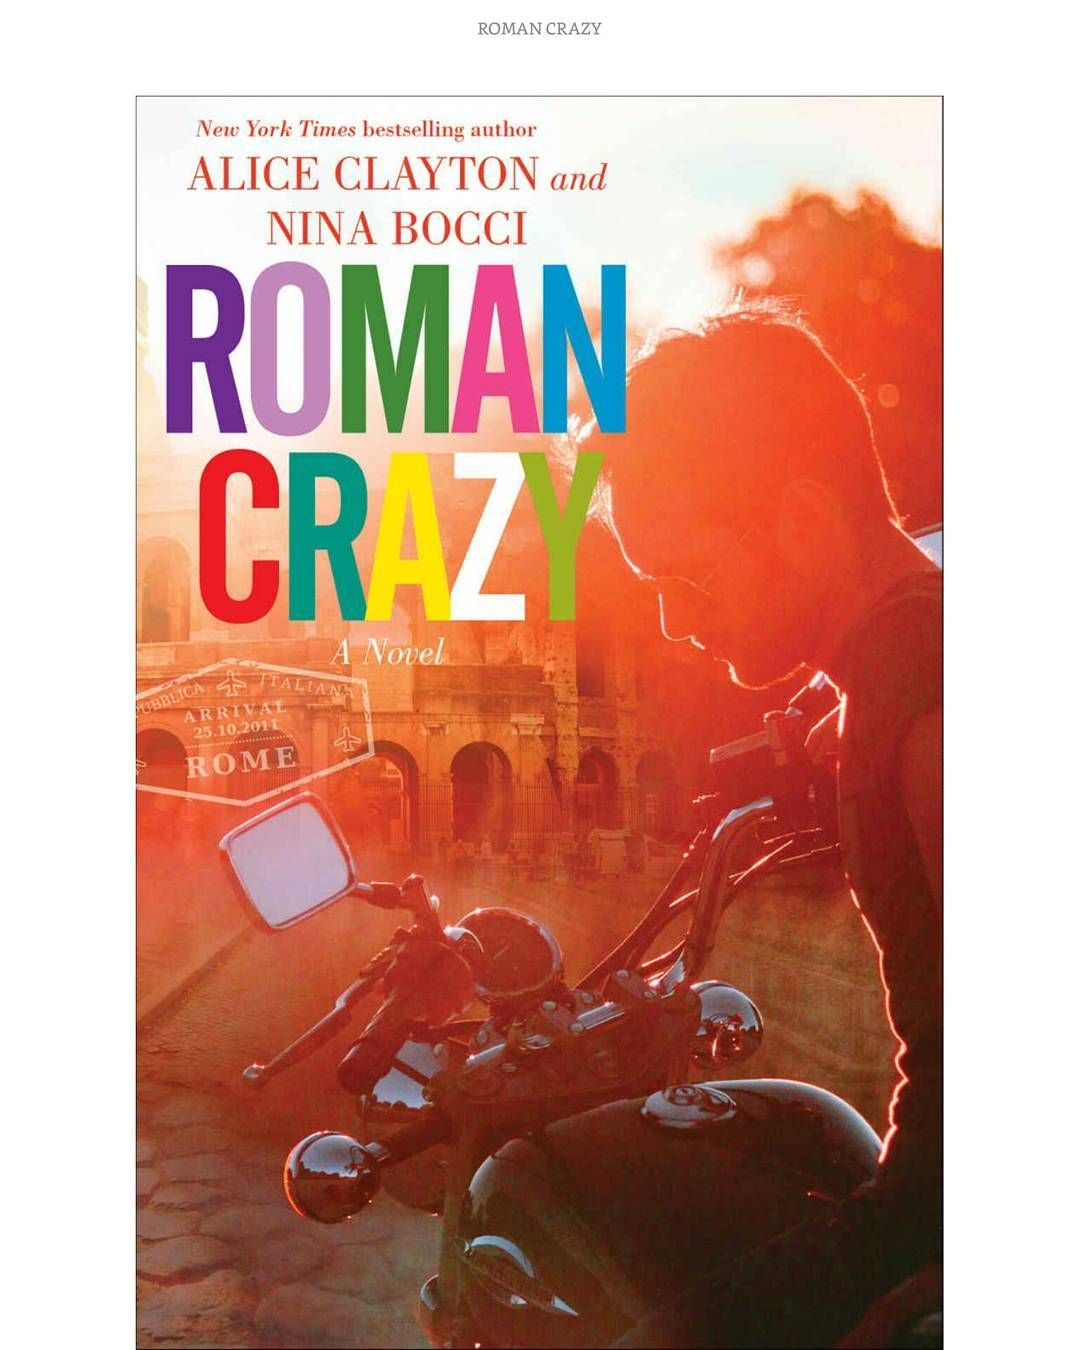 So excited to finally starting #RomanCrazy by @authoraliceclayton! #sundayreading